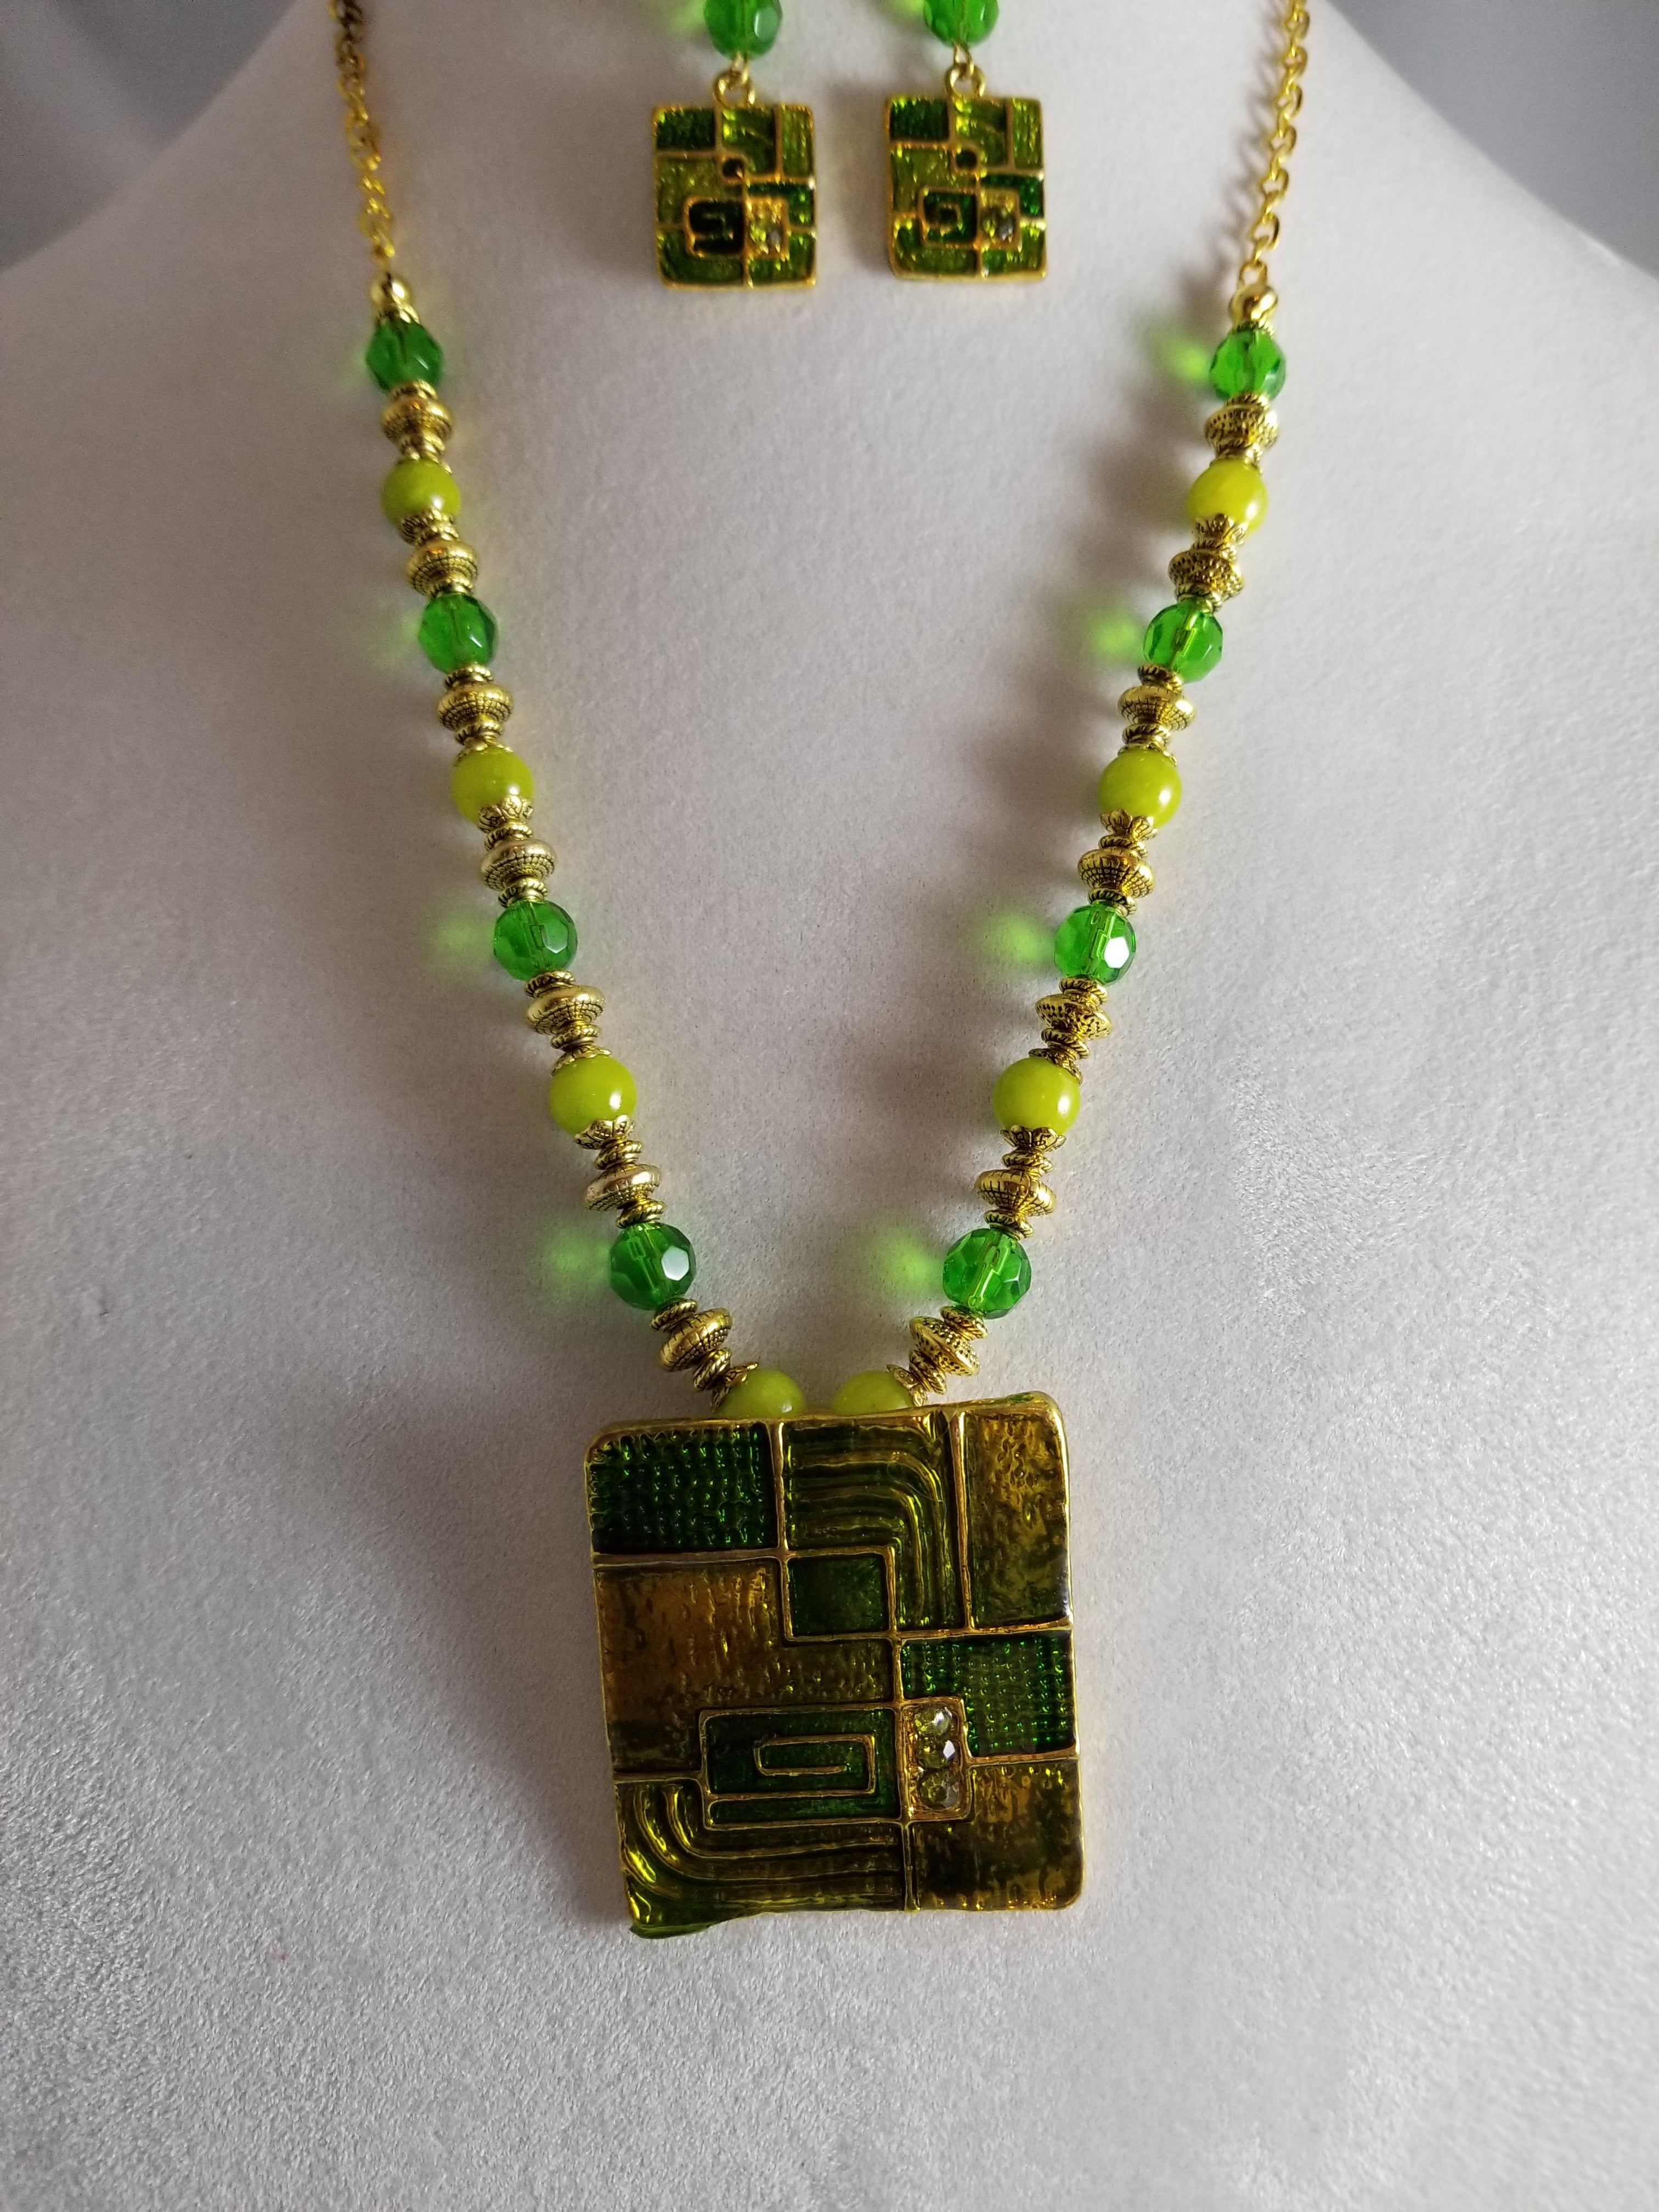 Margarita Necklace with Earrings